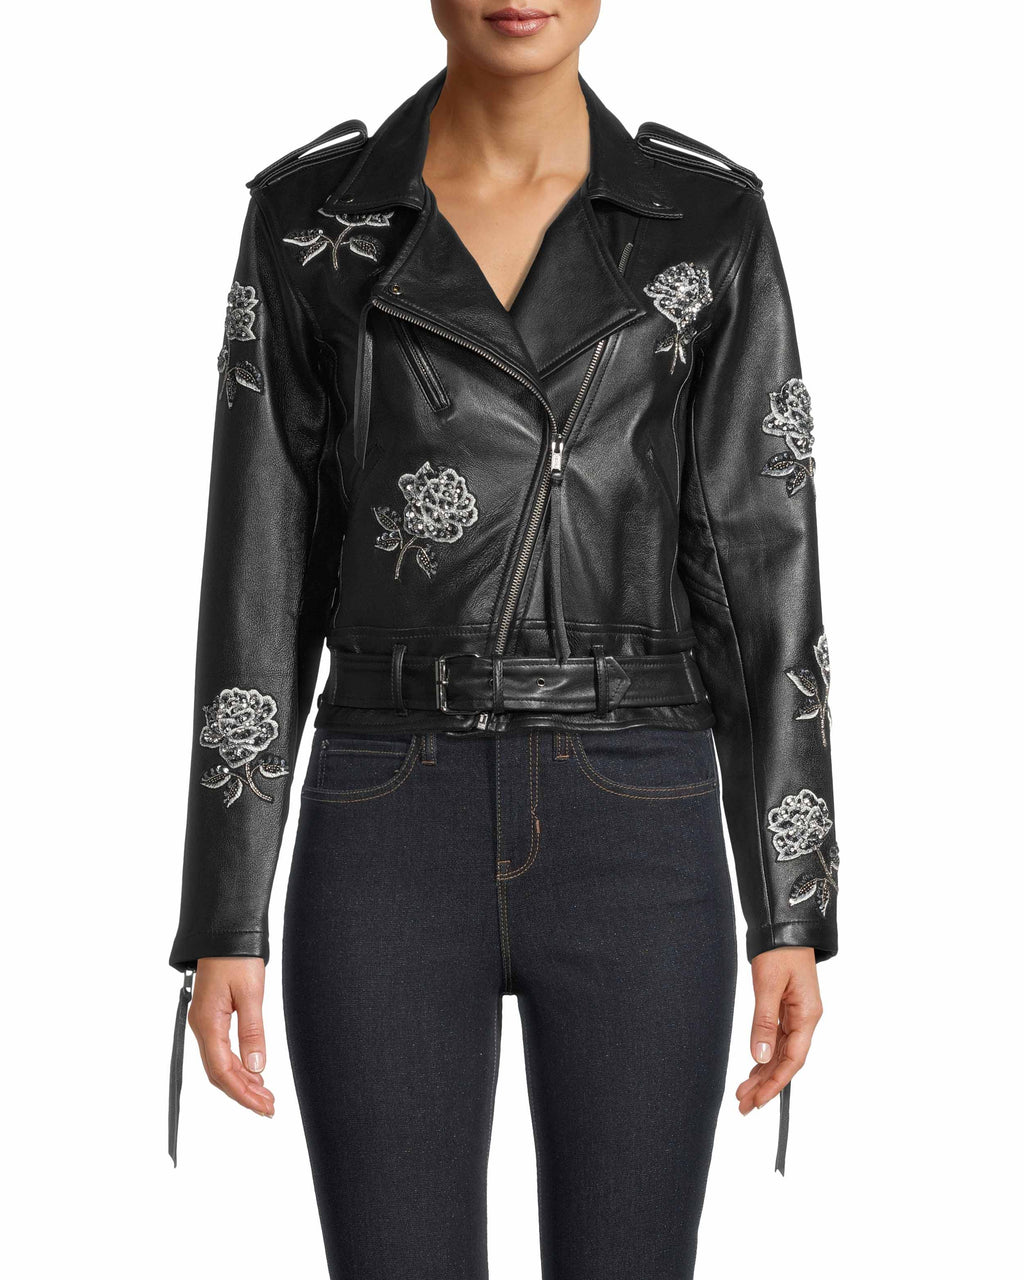 FJ10032 - EMBELLISHED ROSE MOTO JACKET - outerwear - leather - A classic leather jacket style with rose bud embellishments add a playfulness element.